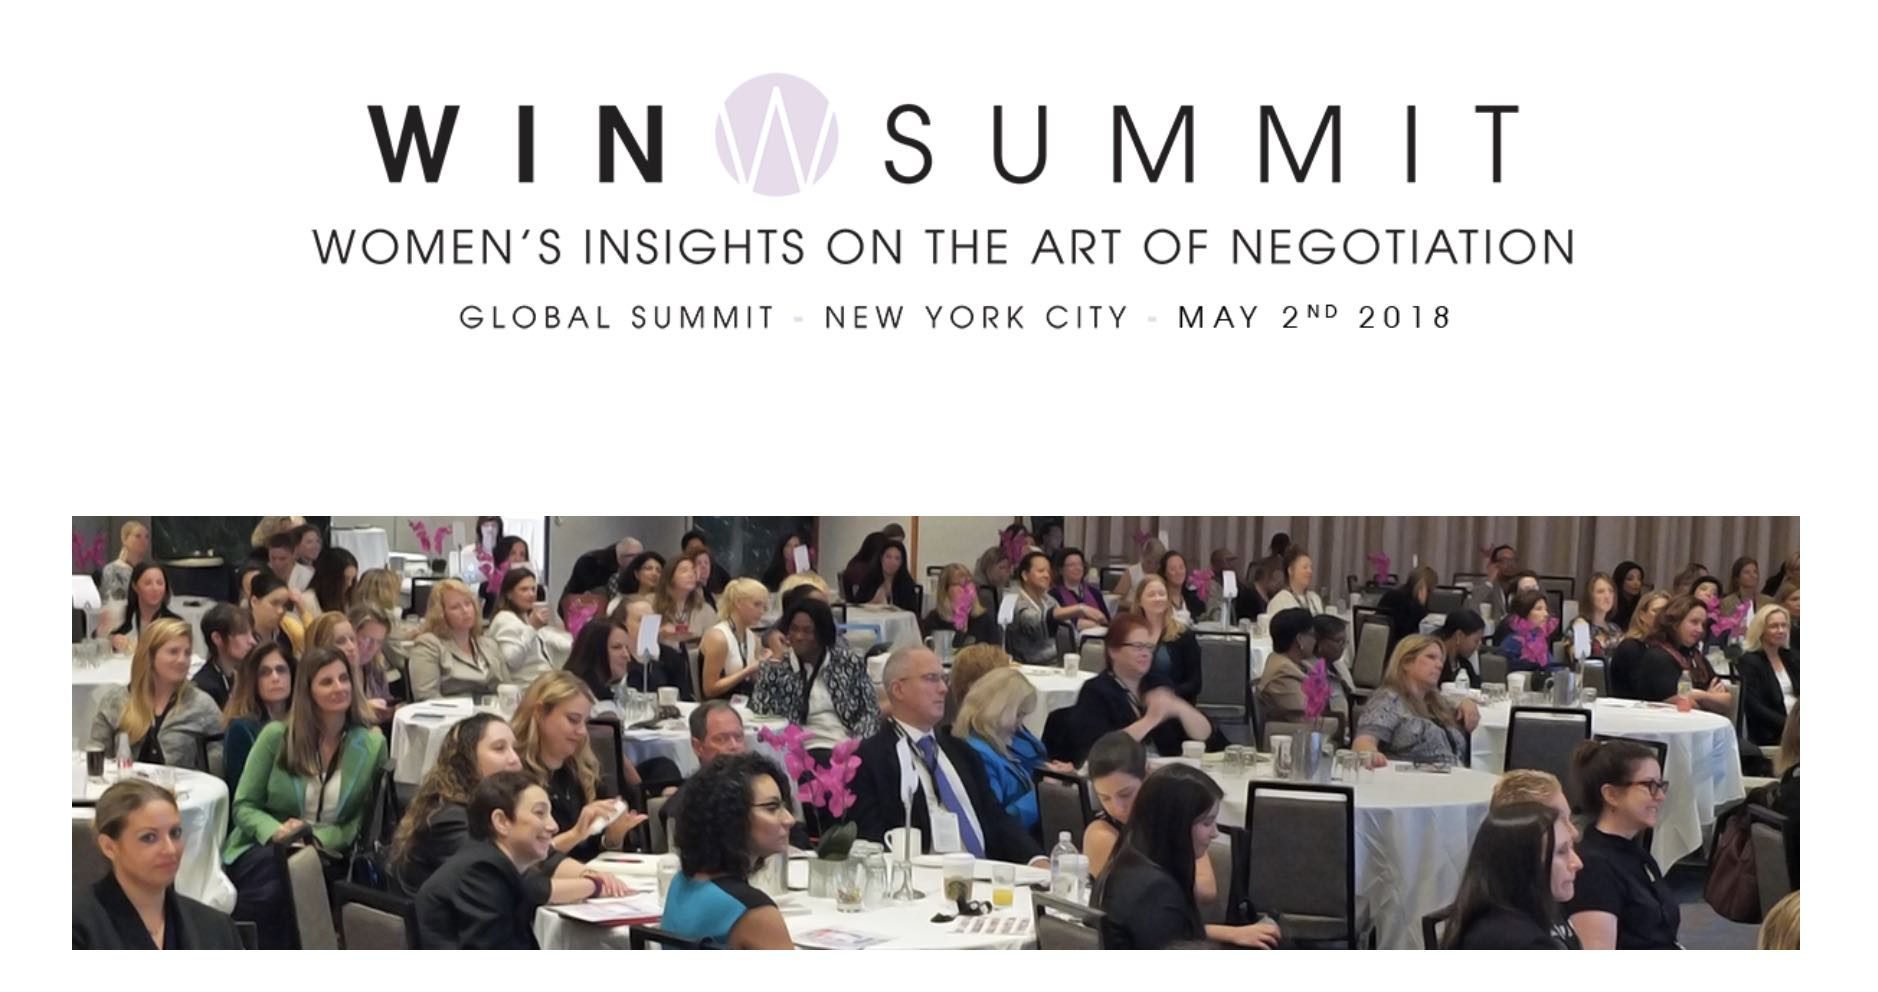 The Women's Insights on the Art of Negotiation Summit, also known as WIN Summit